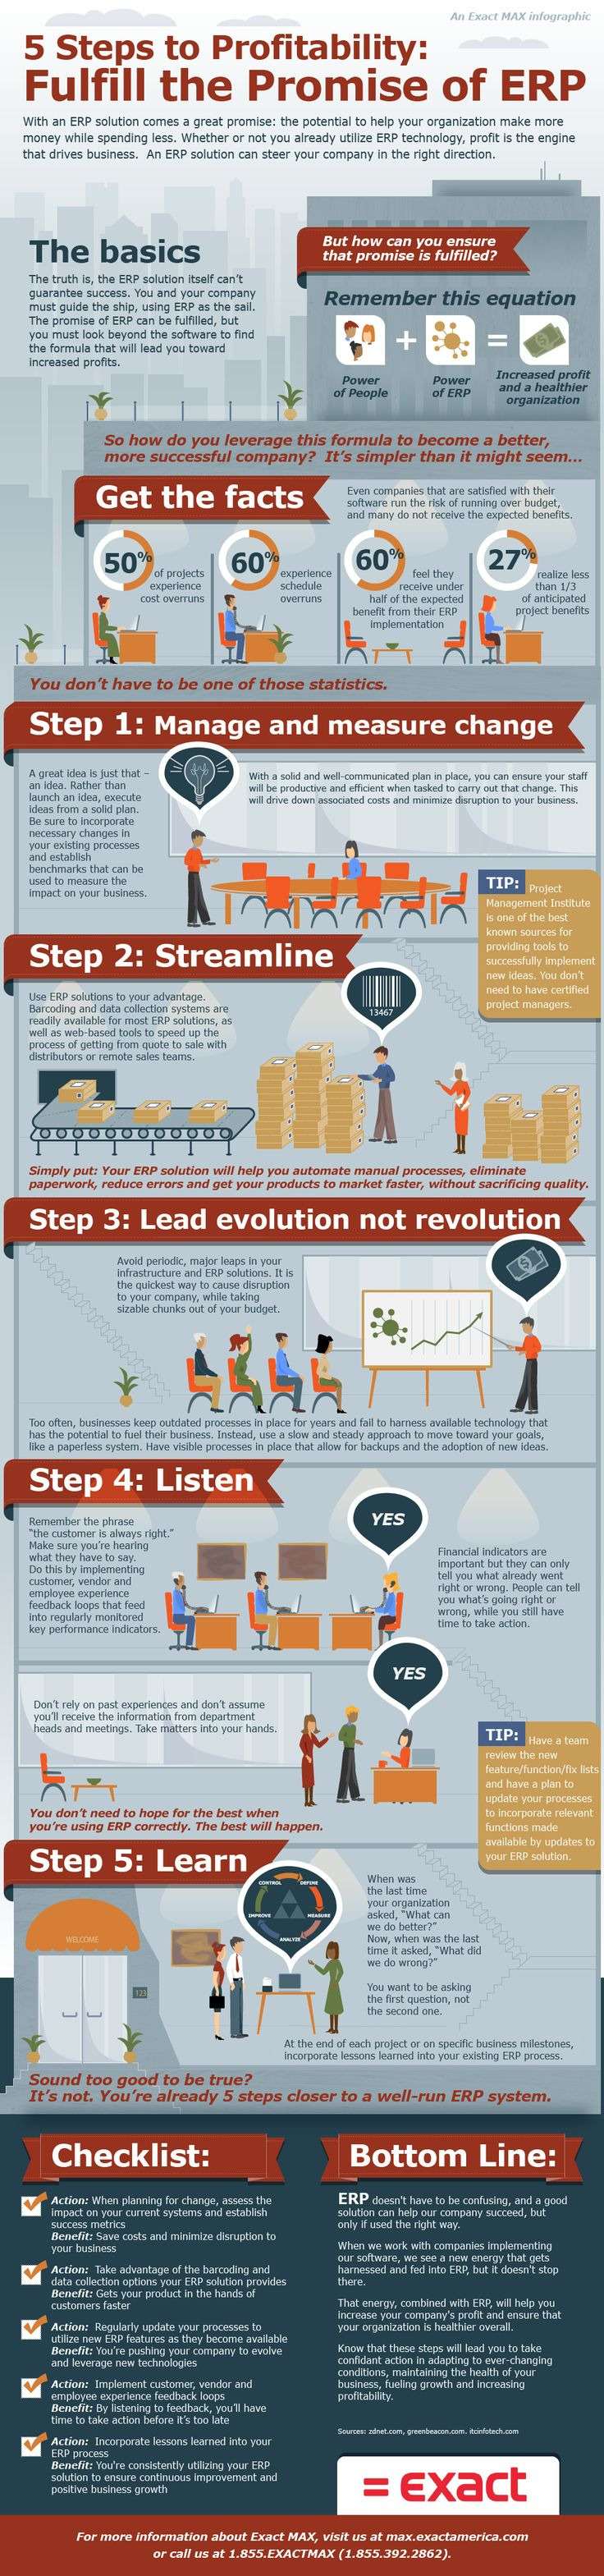 best ideas about erp chaton mignon chat mignon erp enterprise resource planning 5 steps to erp profitability infographic